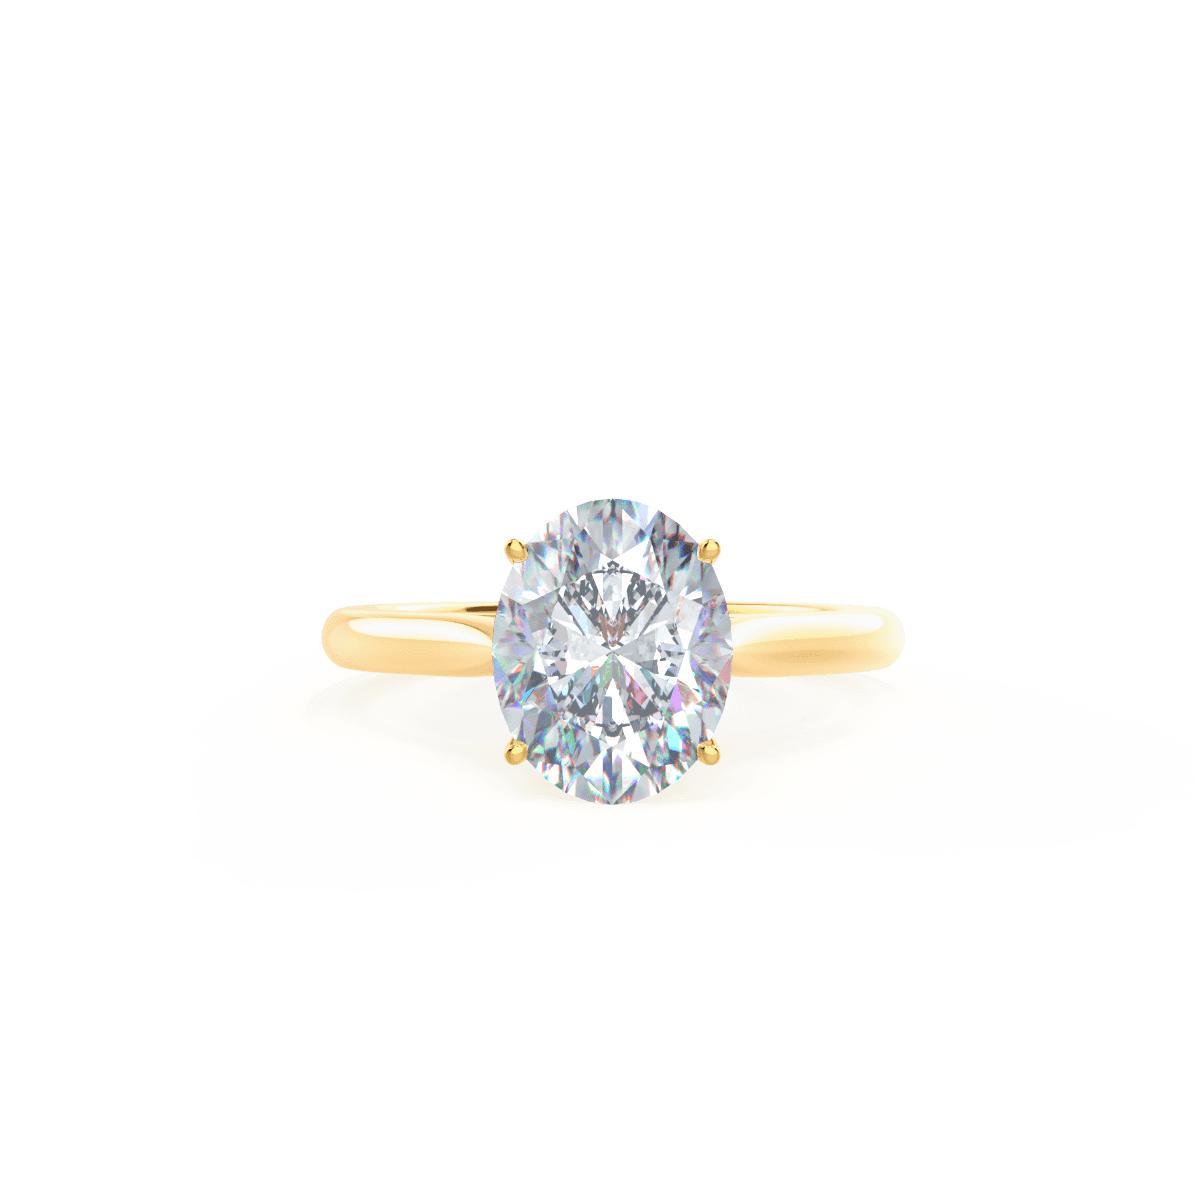 Custom Antique-Style Oval Diamond Engagement Ring